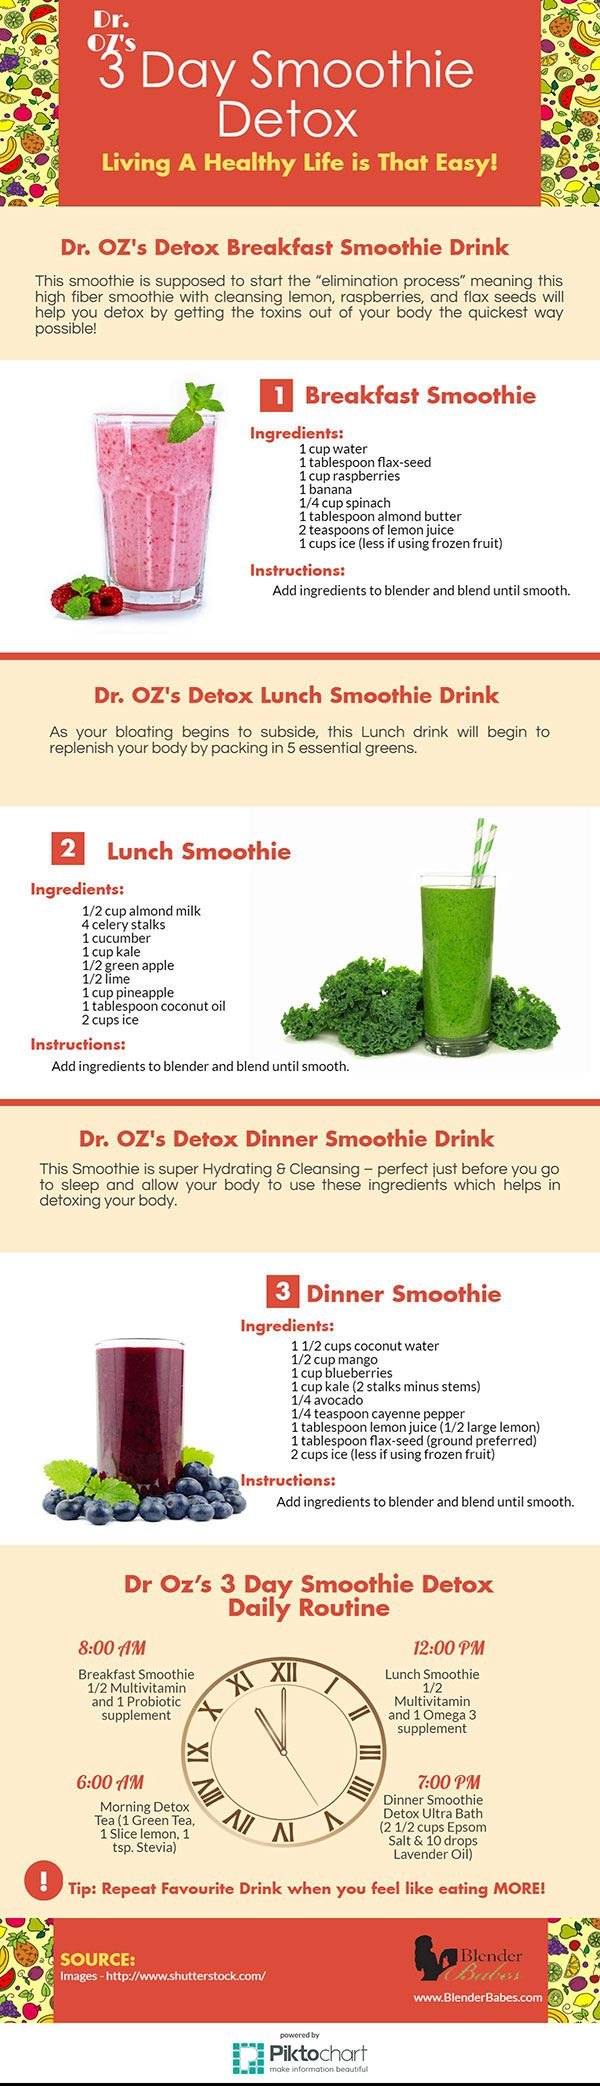 Click for Printable Download! Dr Oz Smoothie Detox Recipes - a 3 Day Smoothie Cleanse with healthy smoothies for breakfast, lunch and dinner. Click for a printable one sheet